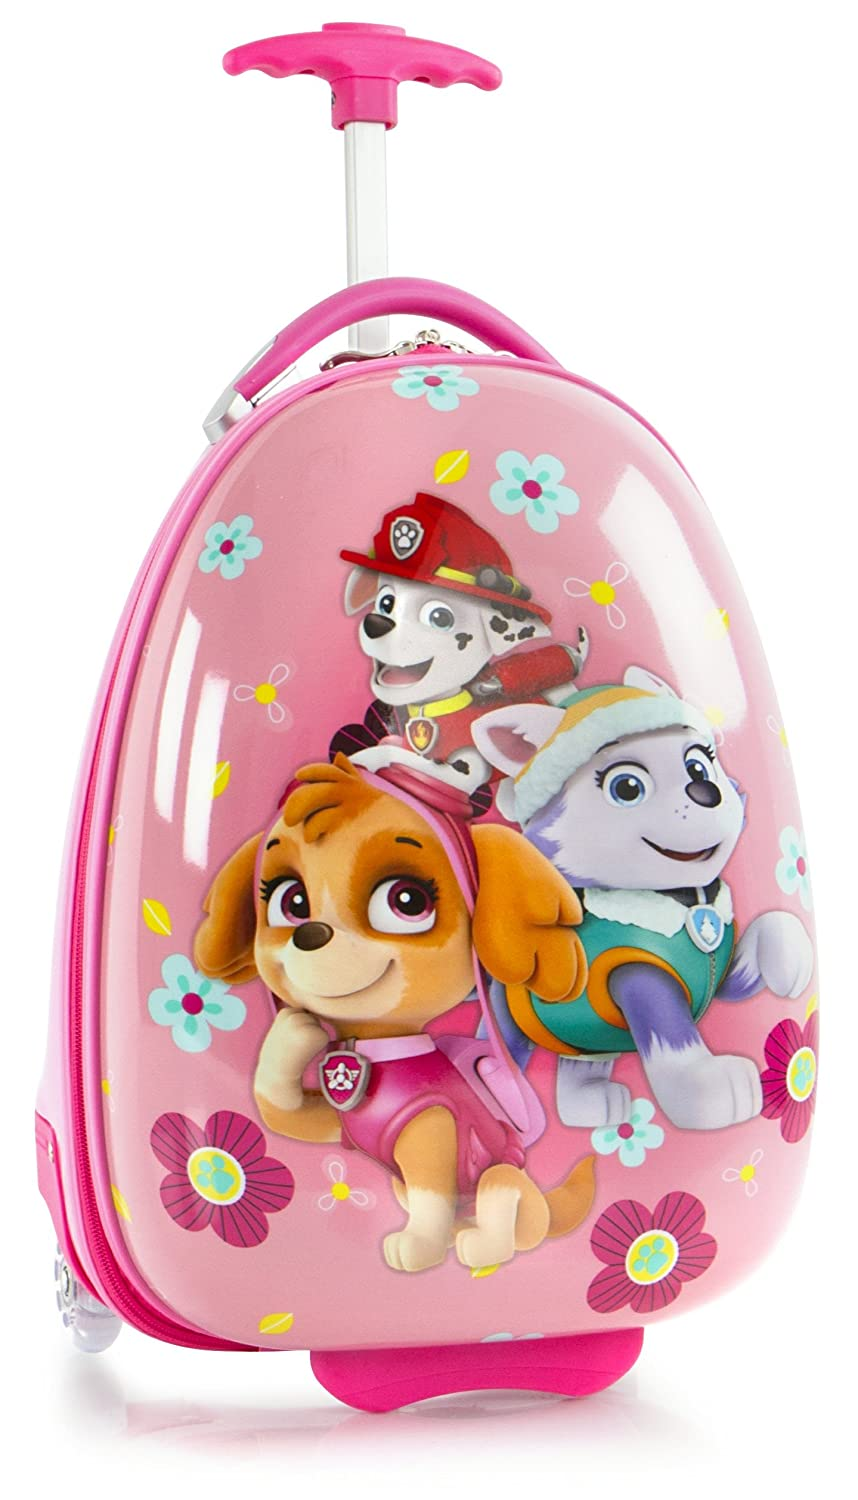 Heys Paw Patrol Designer Luggage Case Pink - For Girls